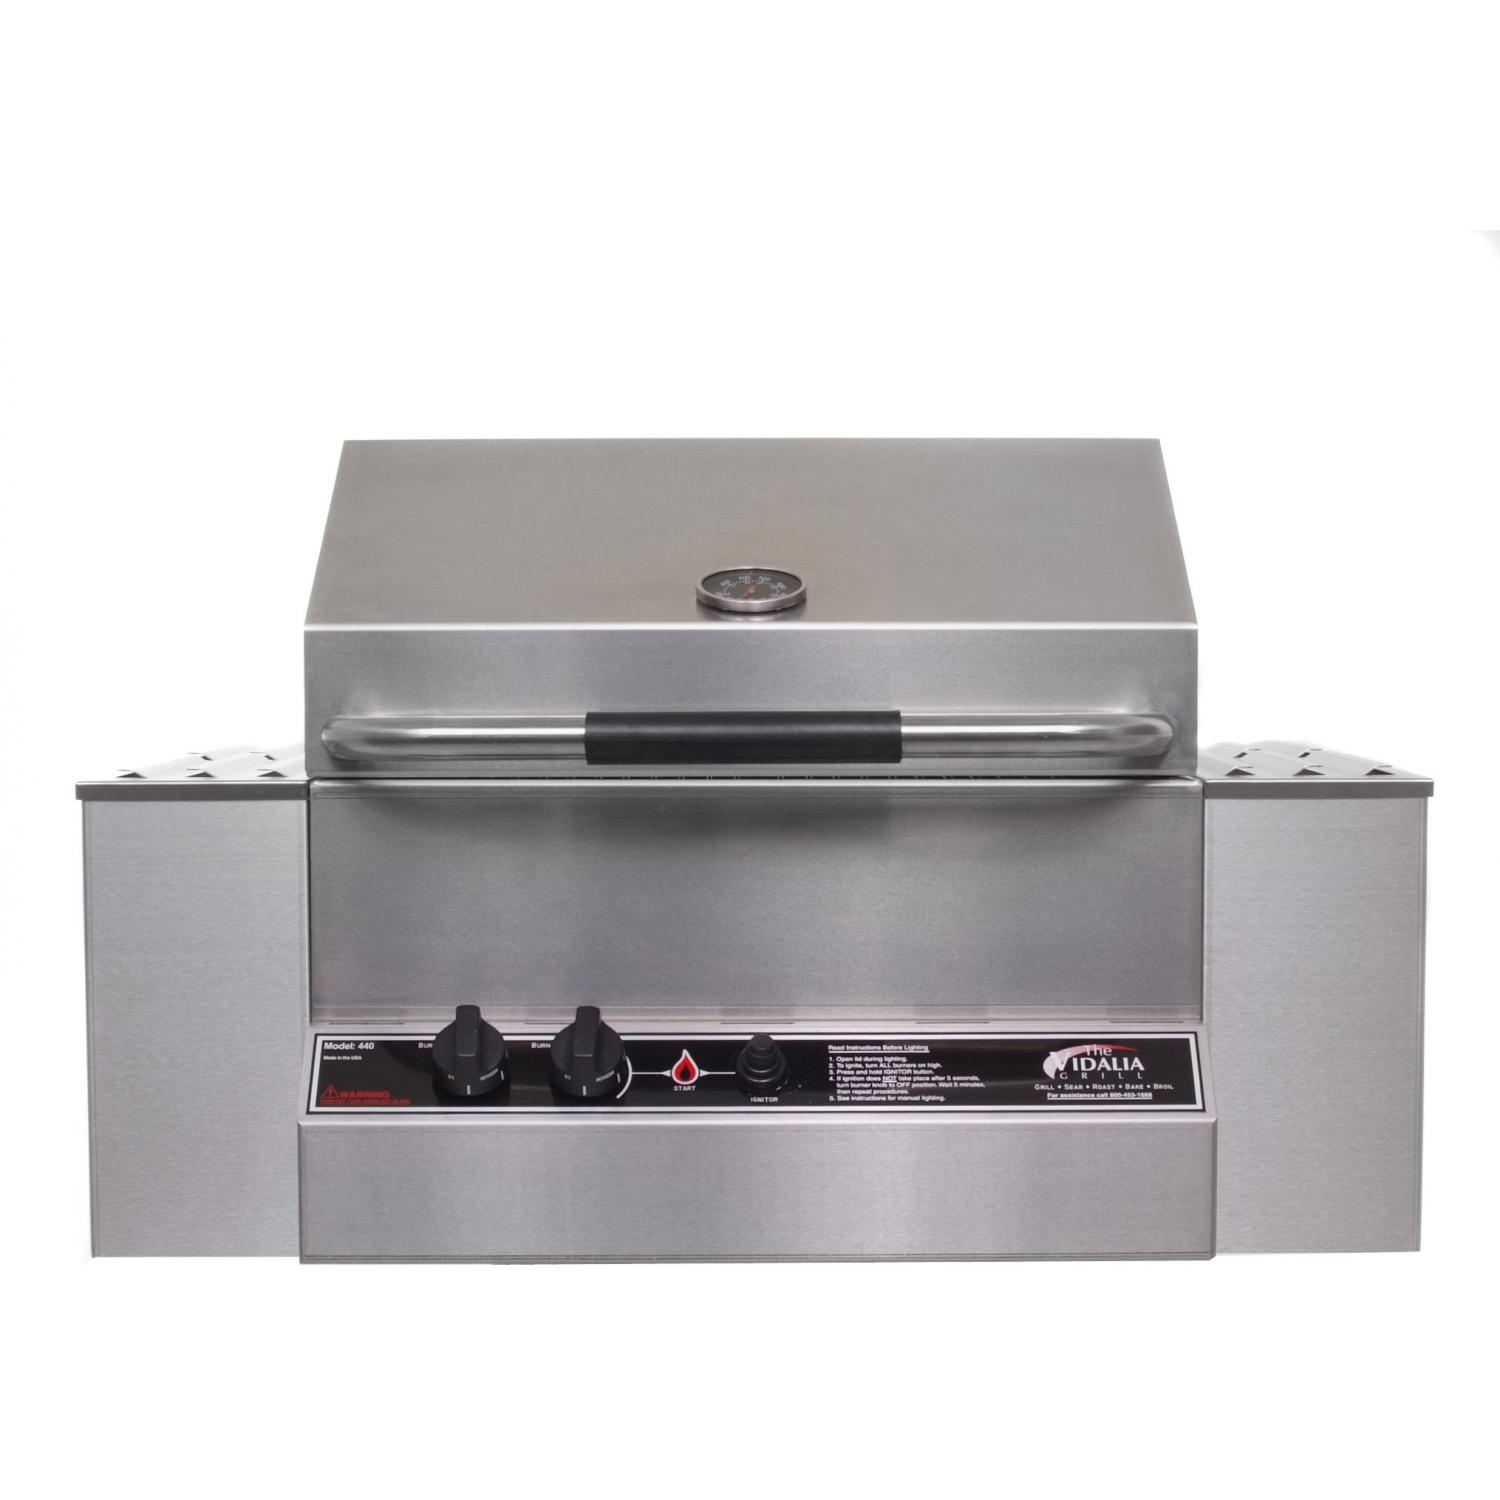 Vidalia Gas Grills Built-In Natural Gas Grill 440